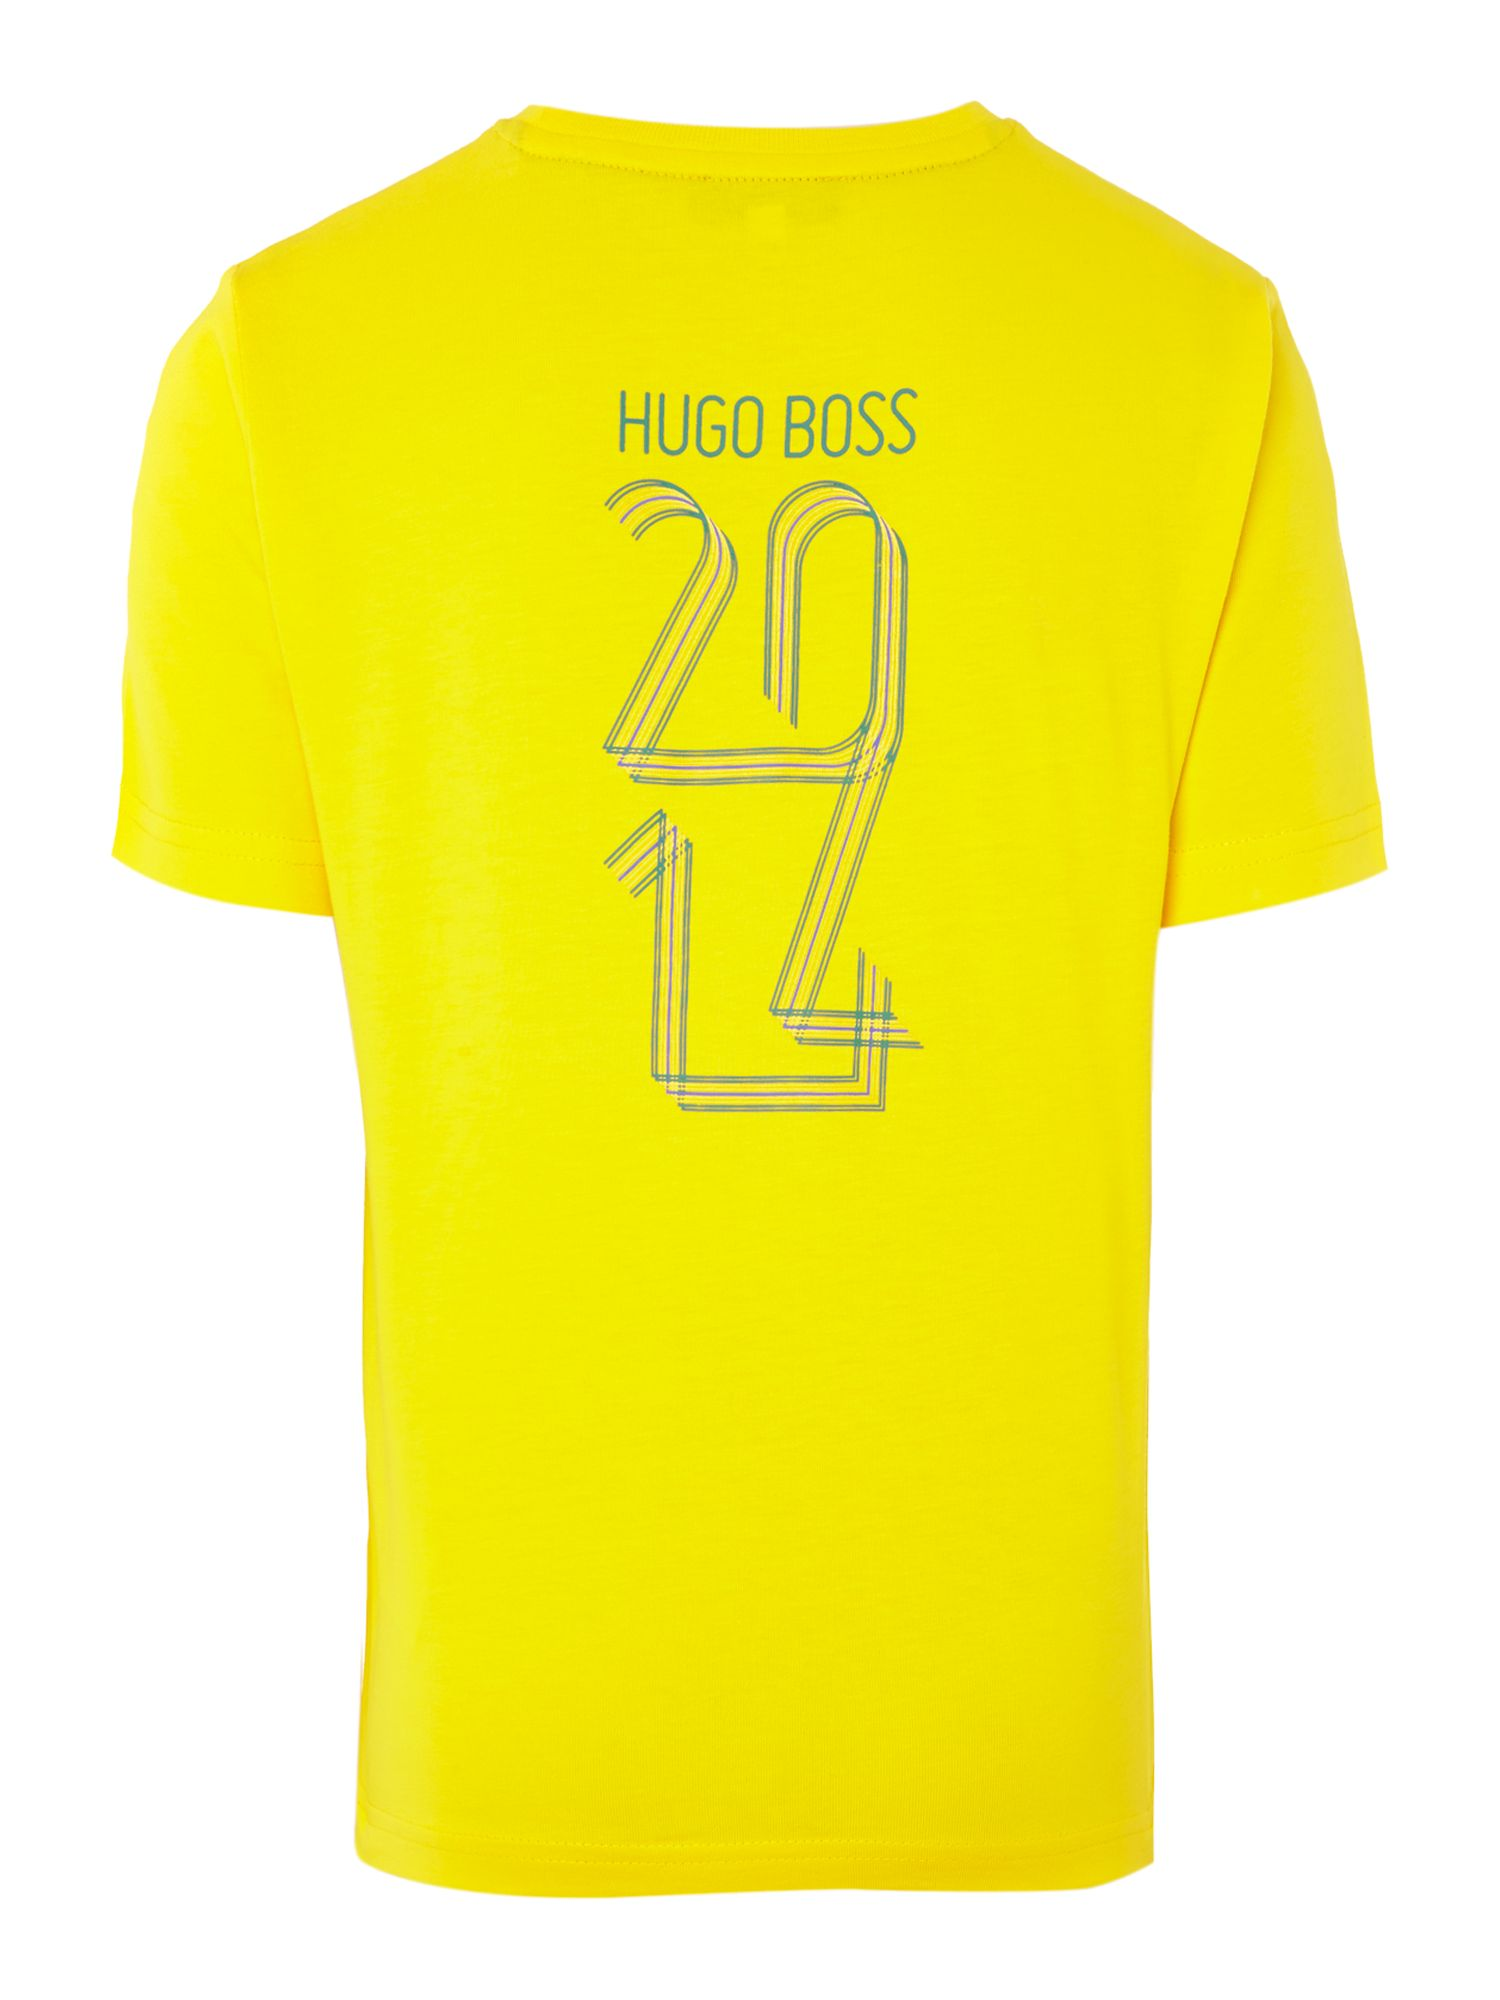 Kids Brazil football colours t-shirt